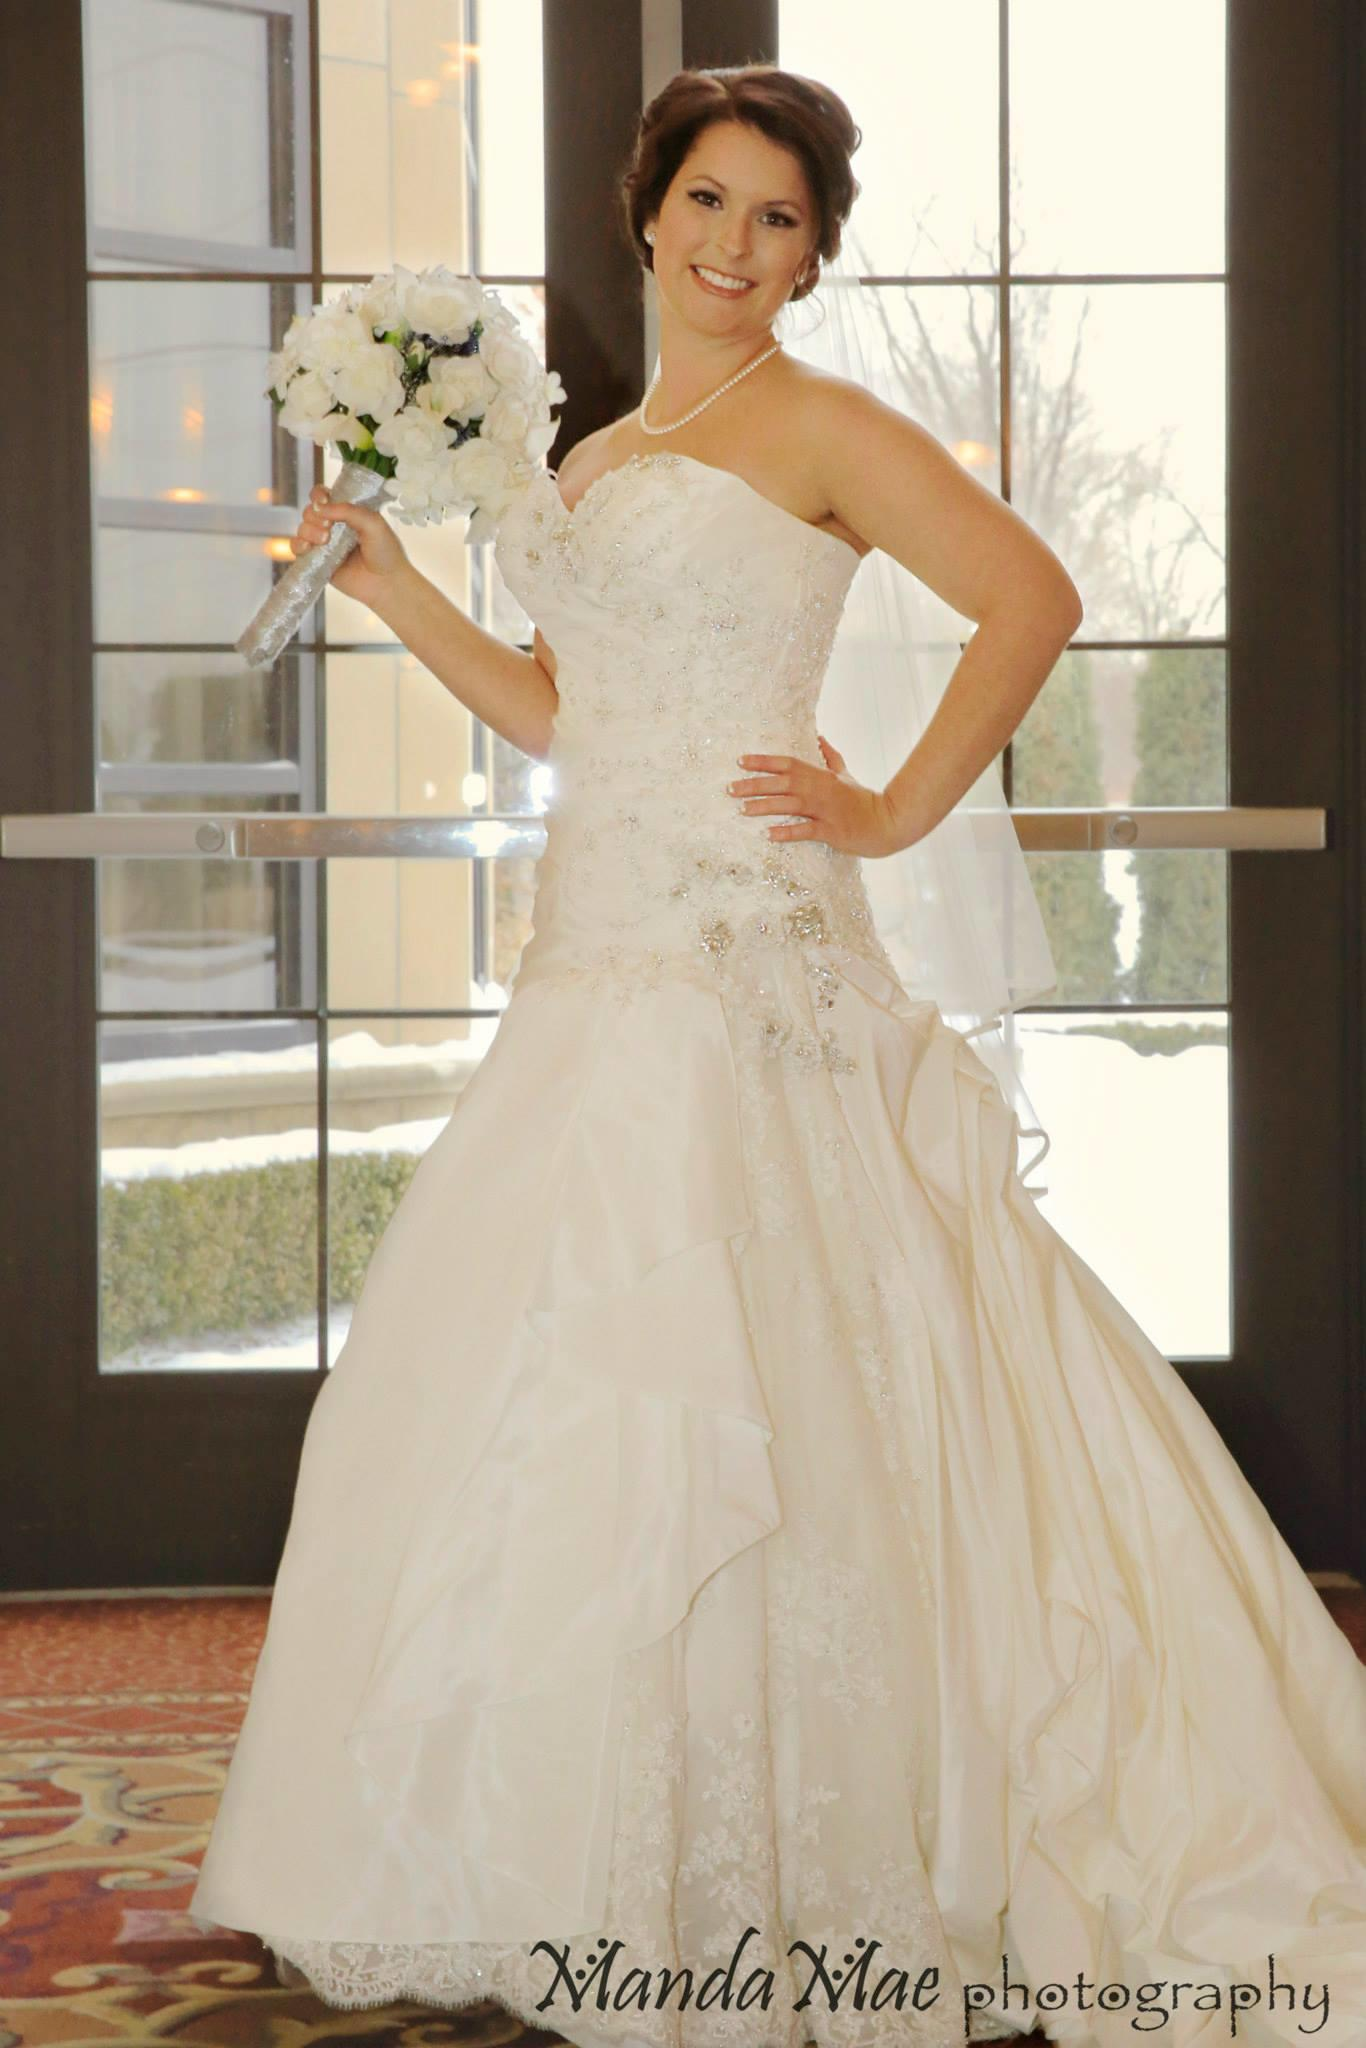 Marcile's Fashions & Bridals image 3